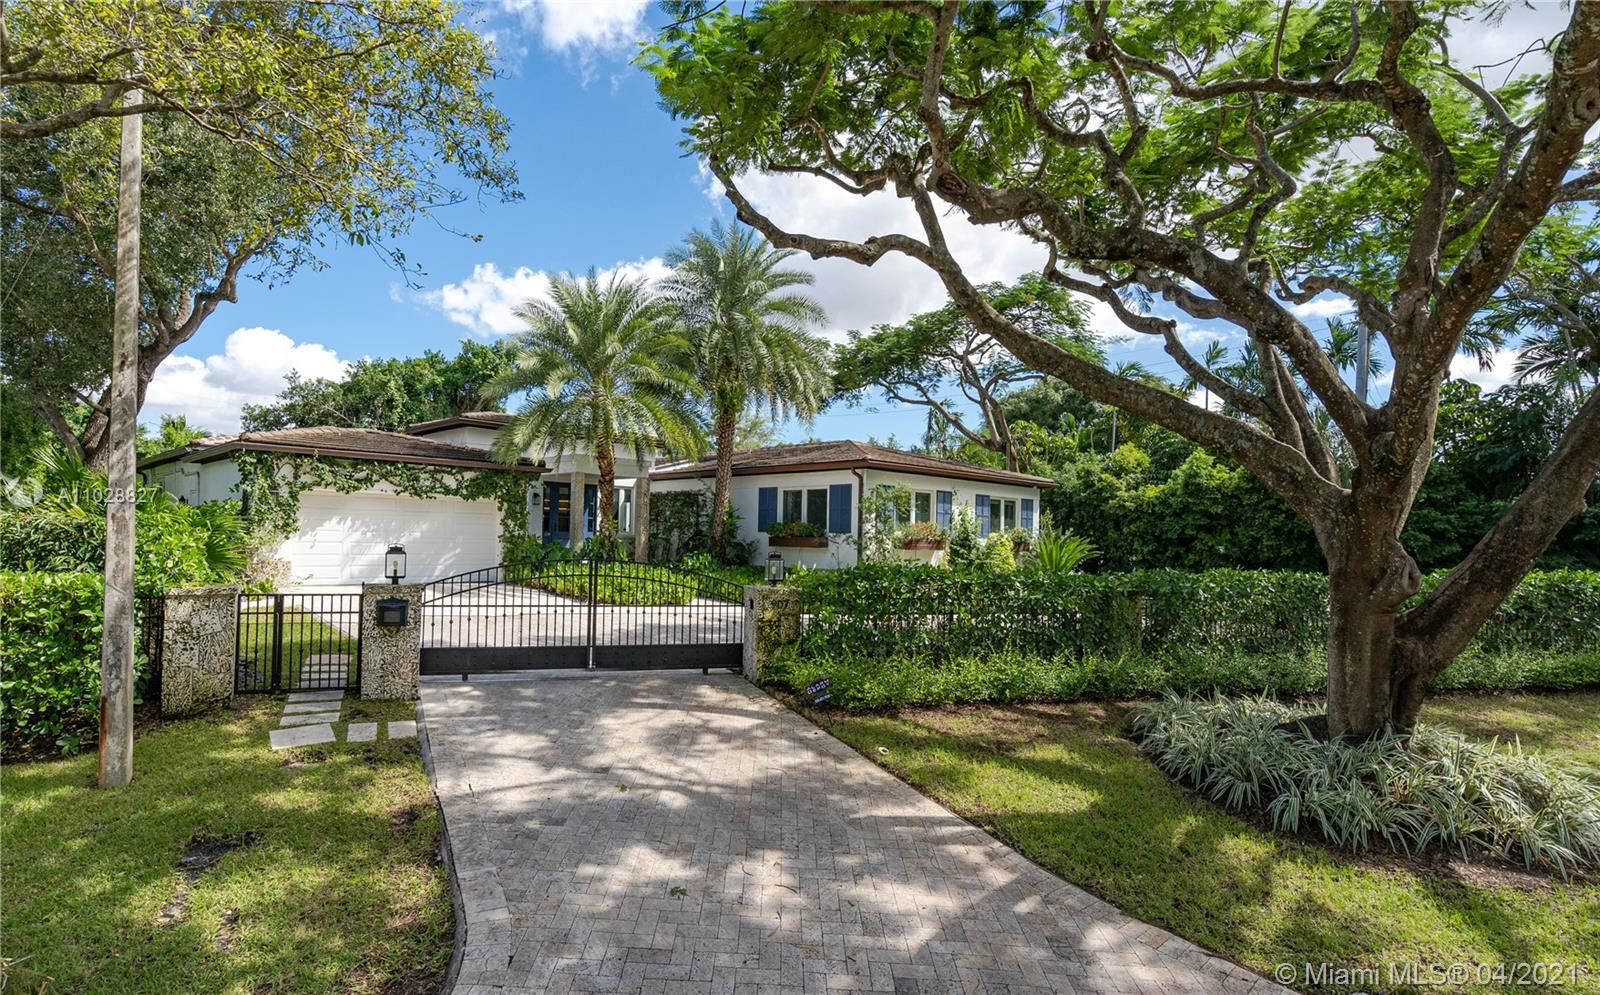 Photo of 907 Jeronimo Dr, Coral Gables, FL 33146 (MLS # A11028827)